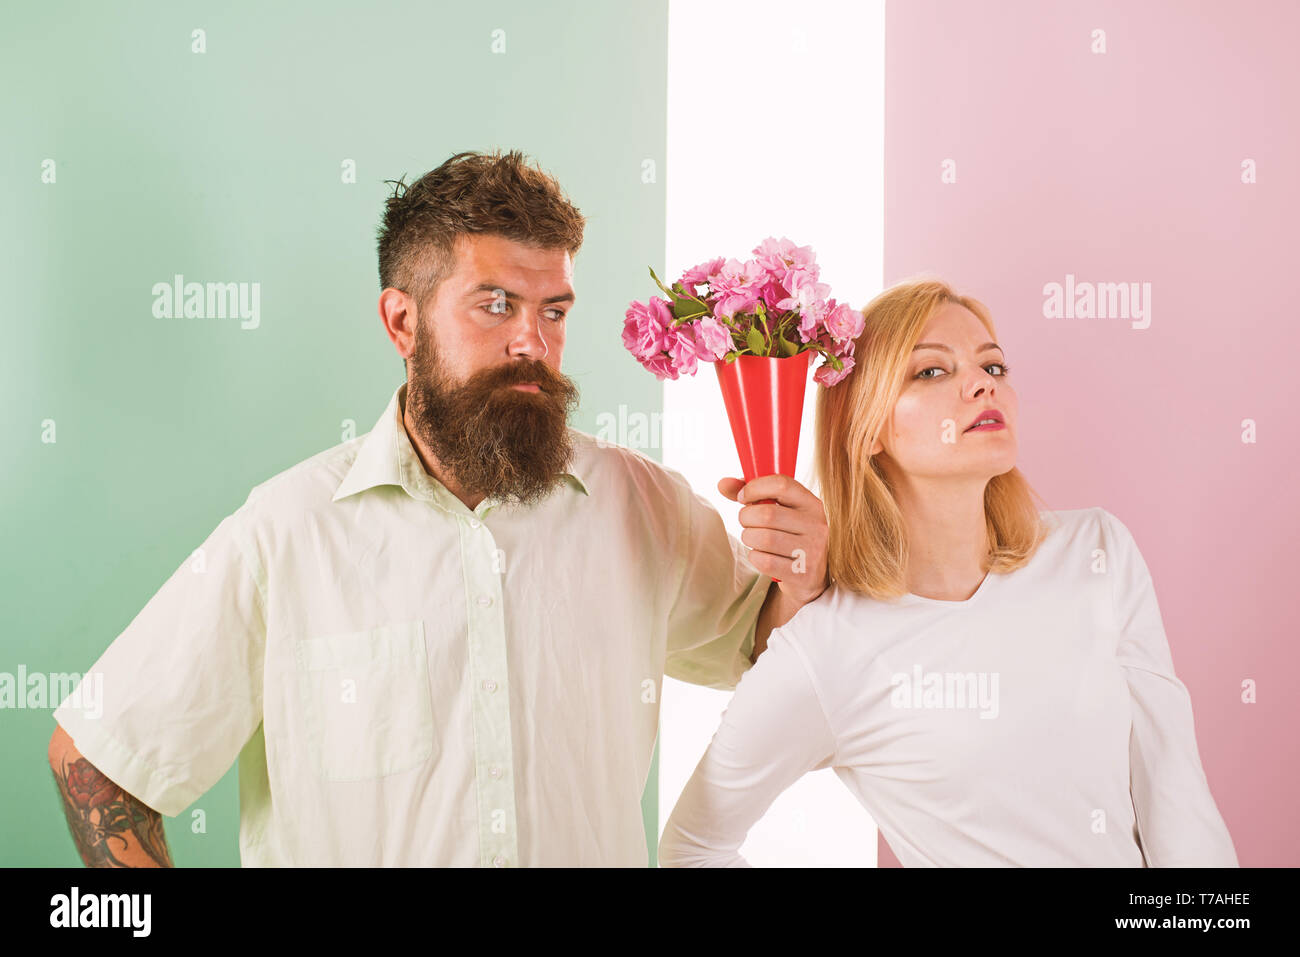 Hipster bearded give bouquet flowers girl excuse gesture. Man with beard apologyes woman. Couple date bouquet flowers gift. Apology concept. Couple in love problem relations forgive guilty boyfriend. - Stock Image